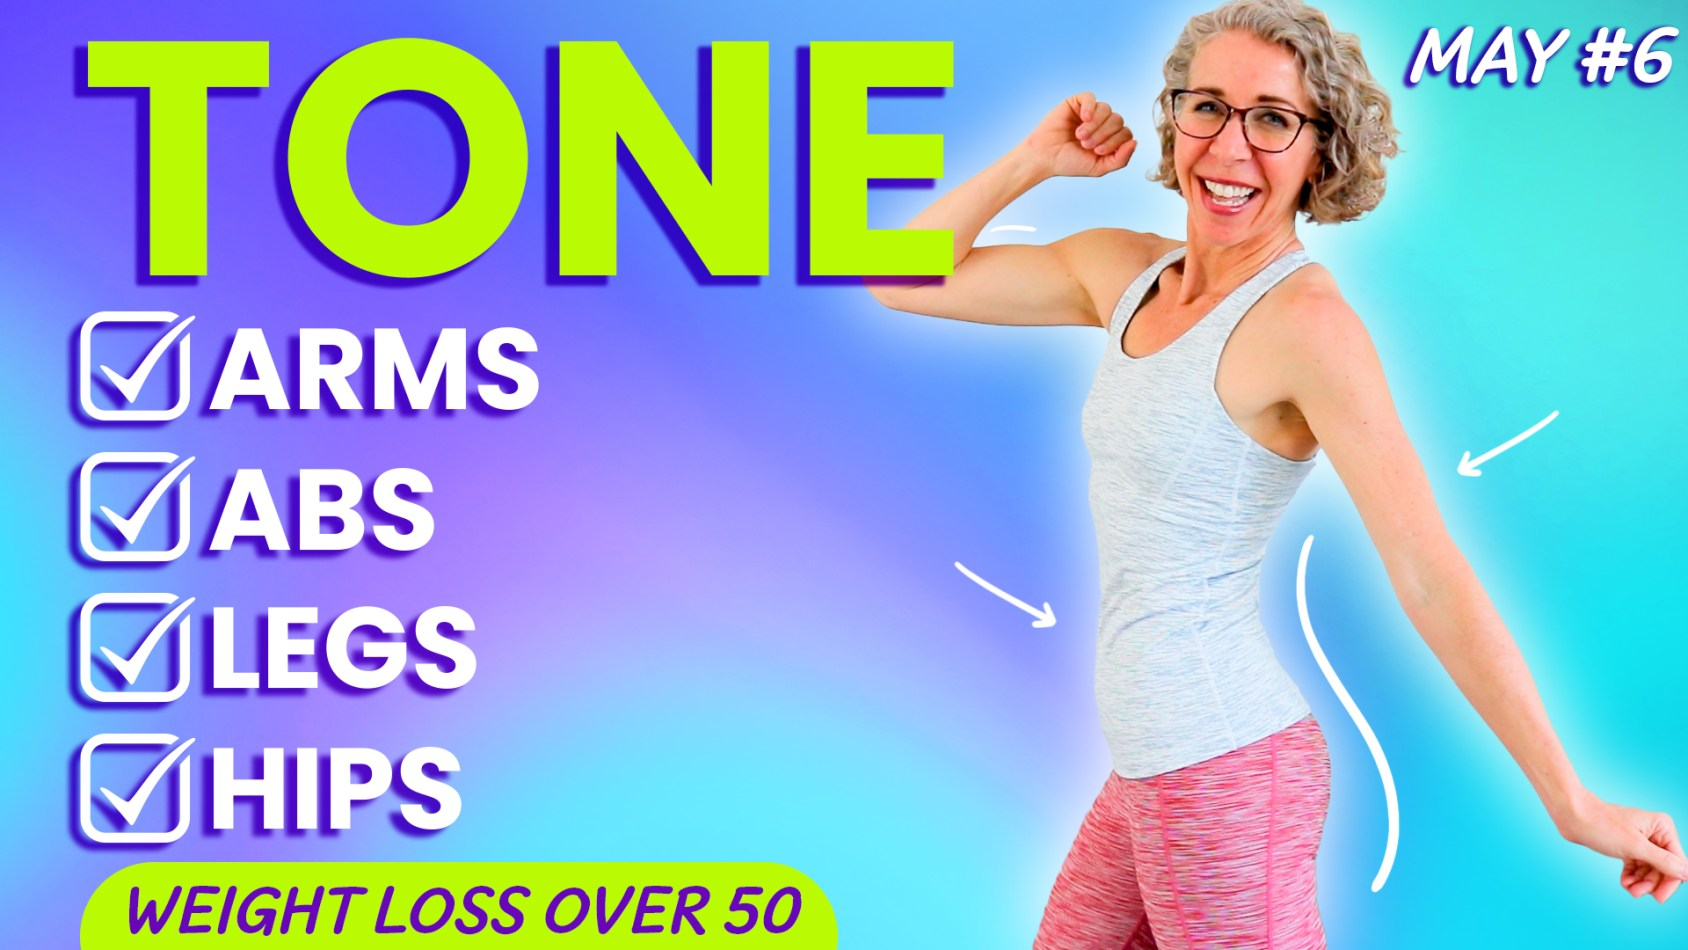 KNEE-FRIENDLY, No Equipment TONING Workout for Women over 50 ???? MAY 6